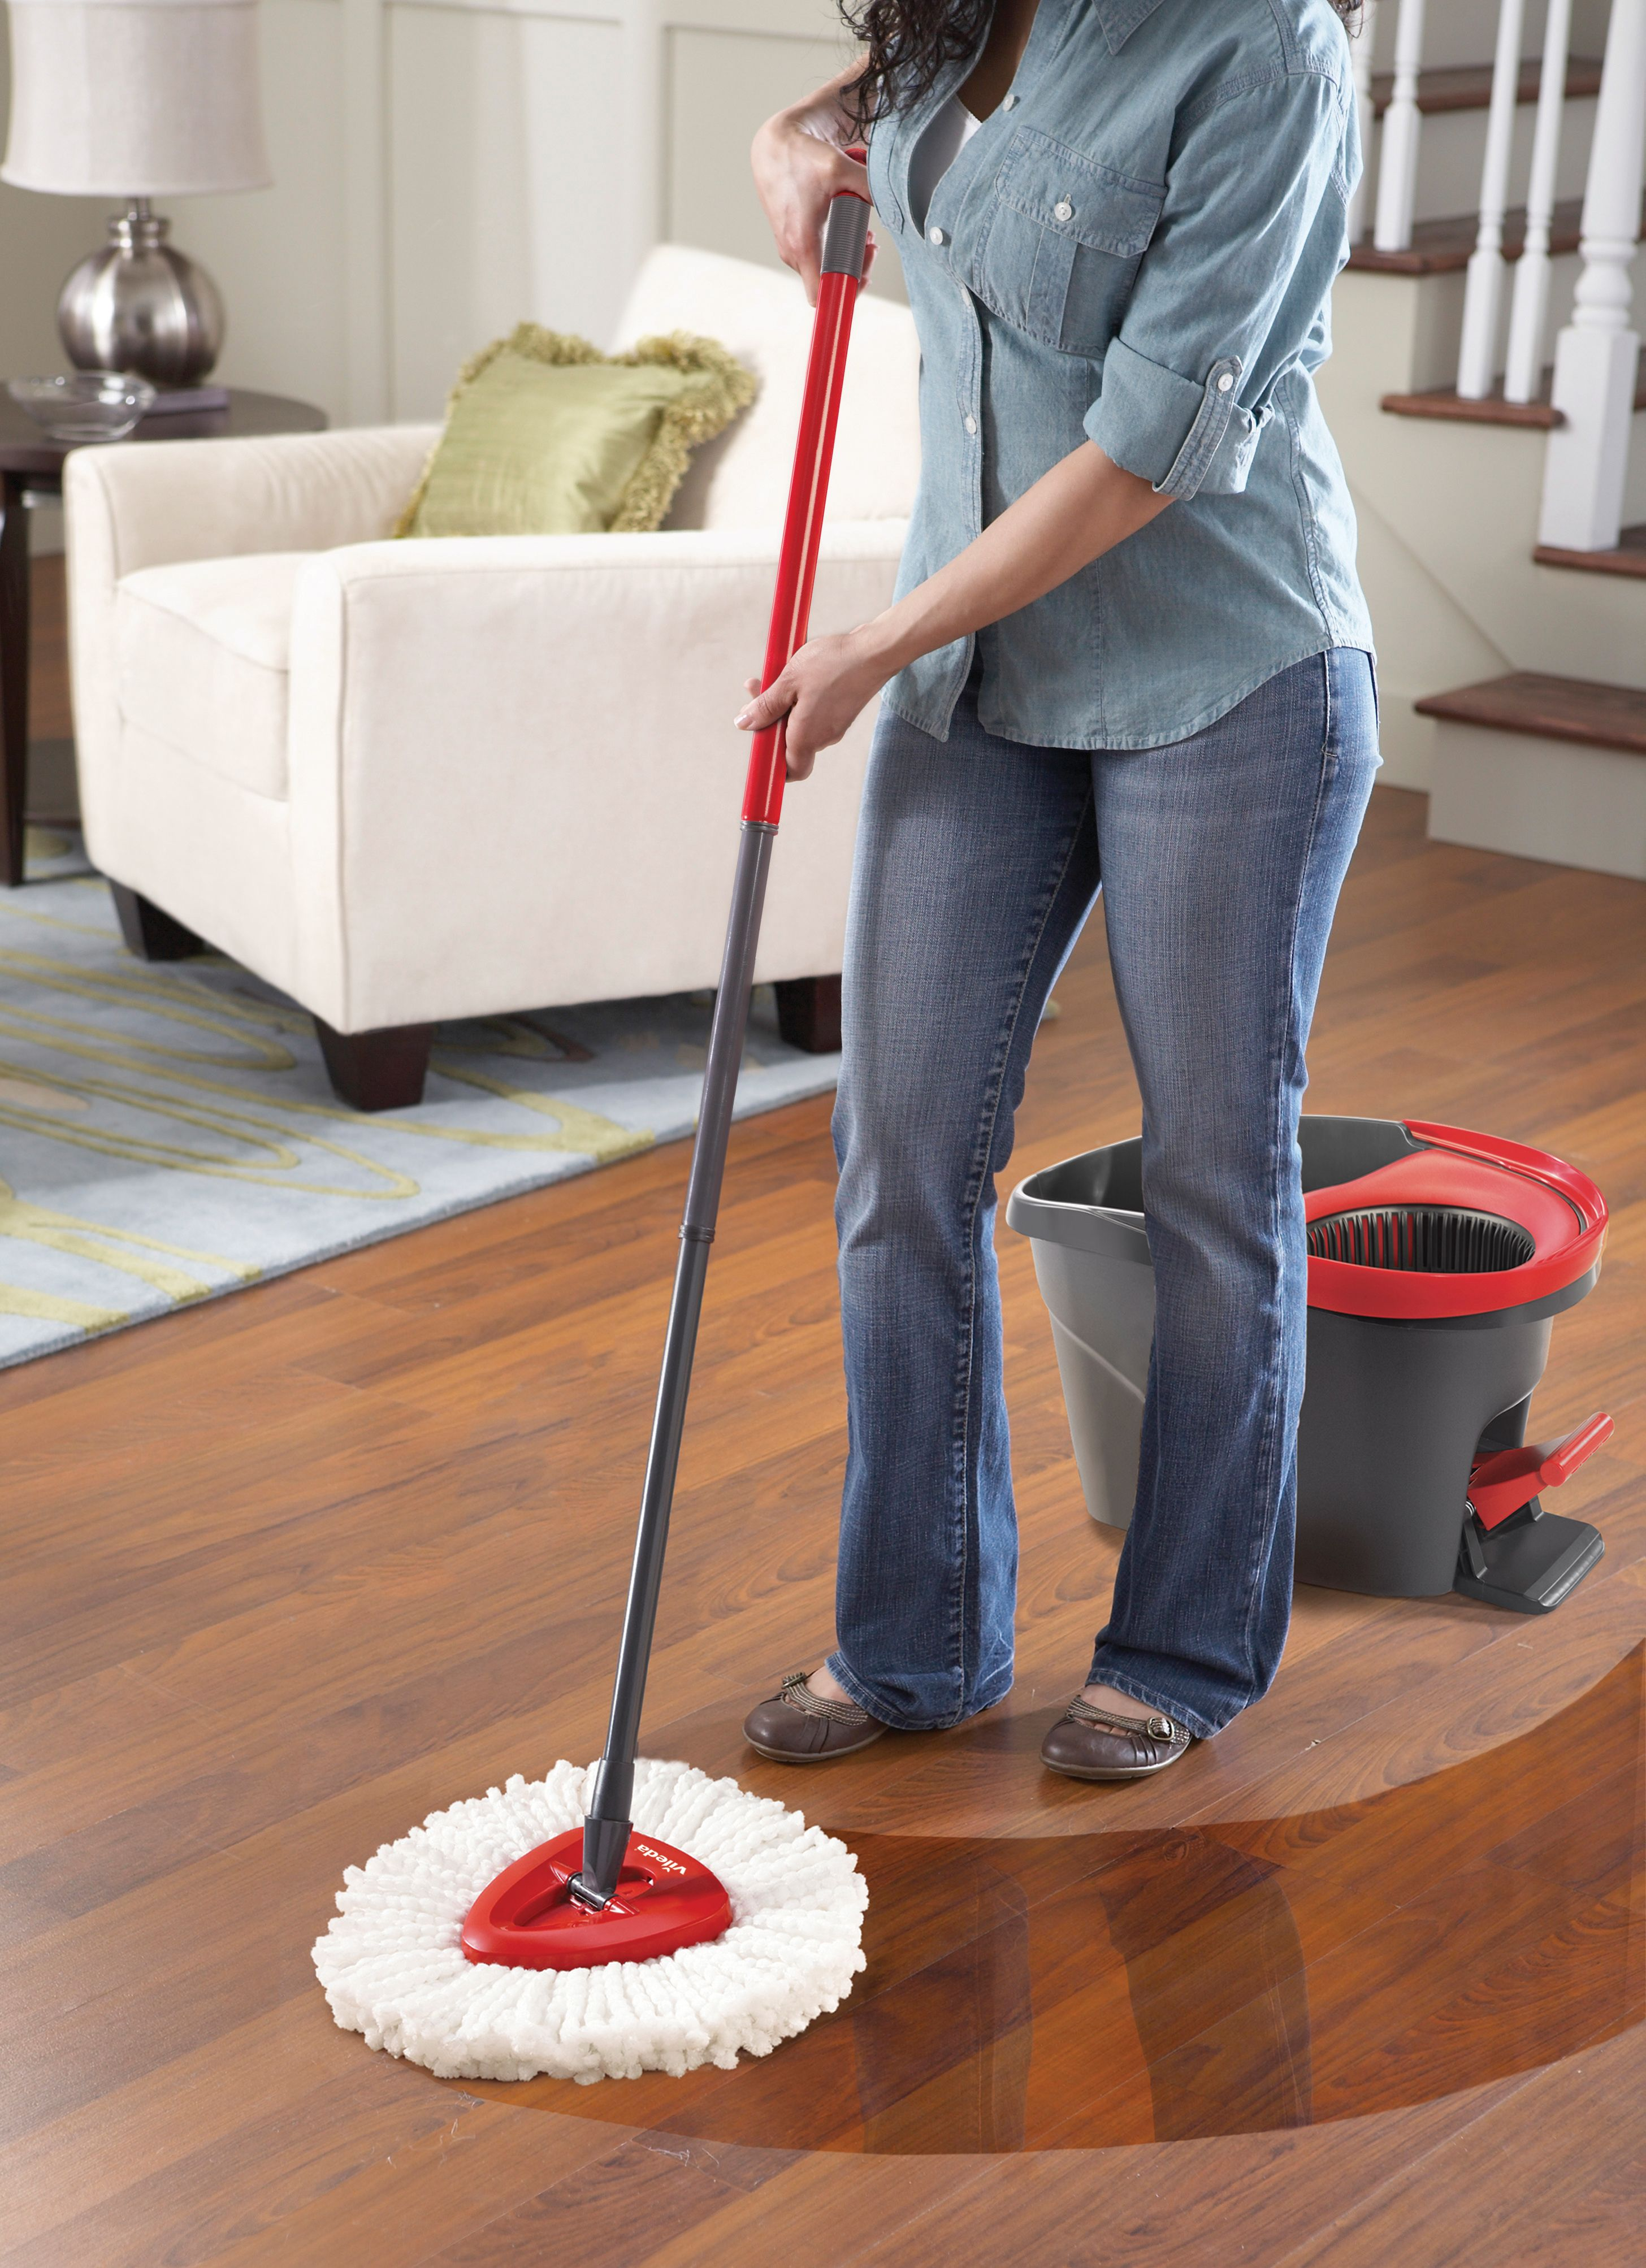 Mopping Kitchen Floor O Cedar Easywring Microfiber Spin Mop And Bucket Floor Cleaning